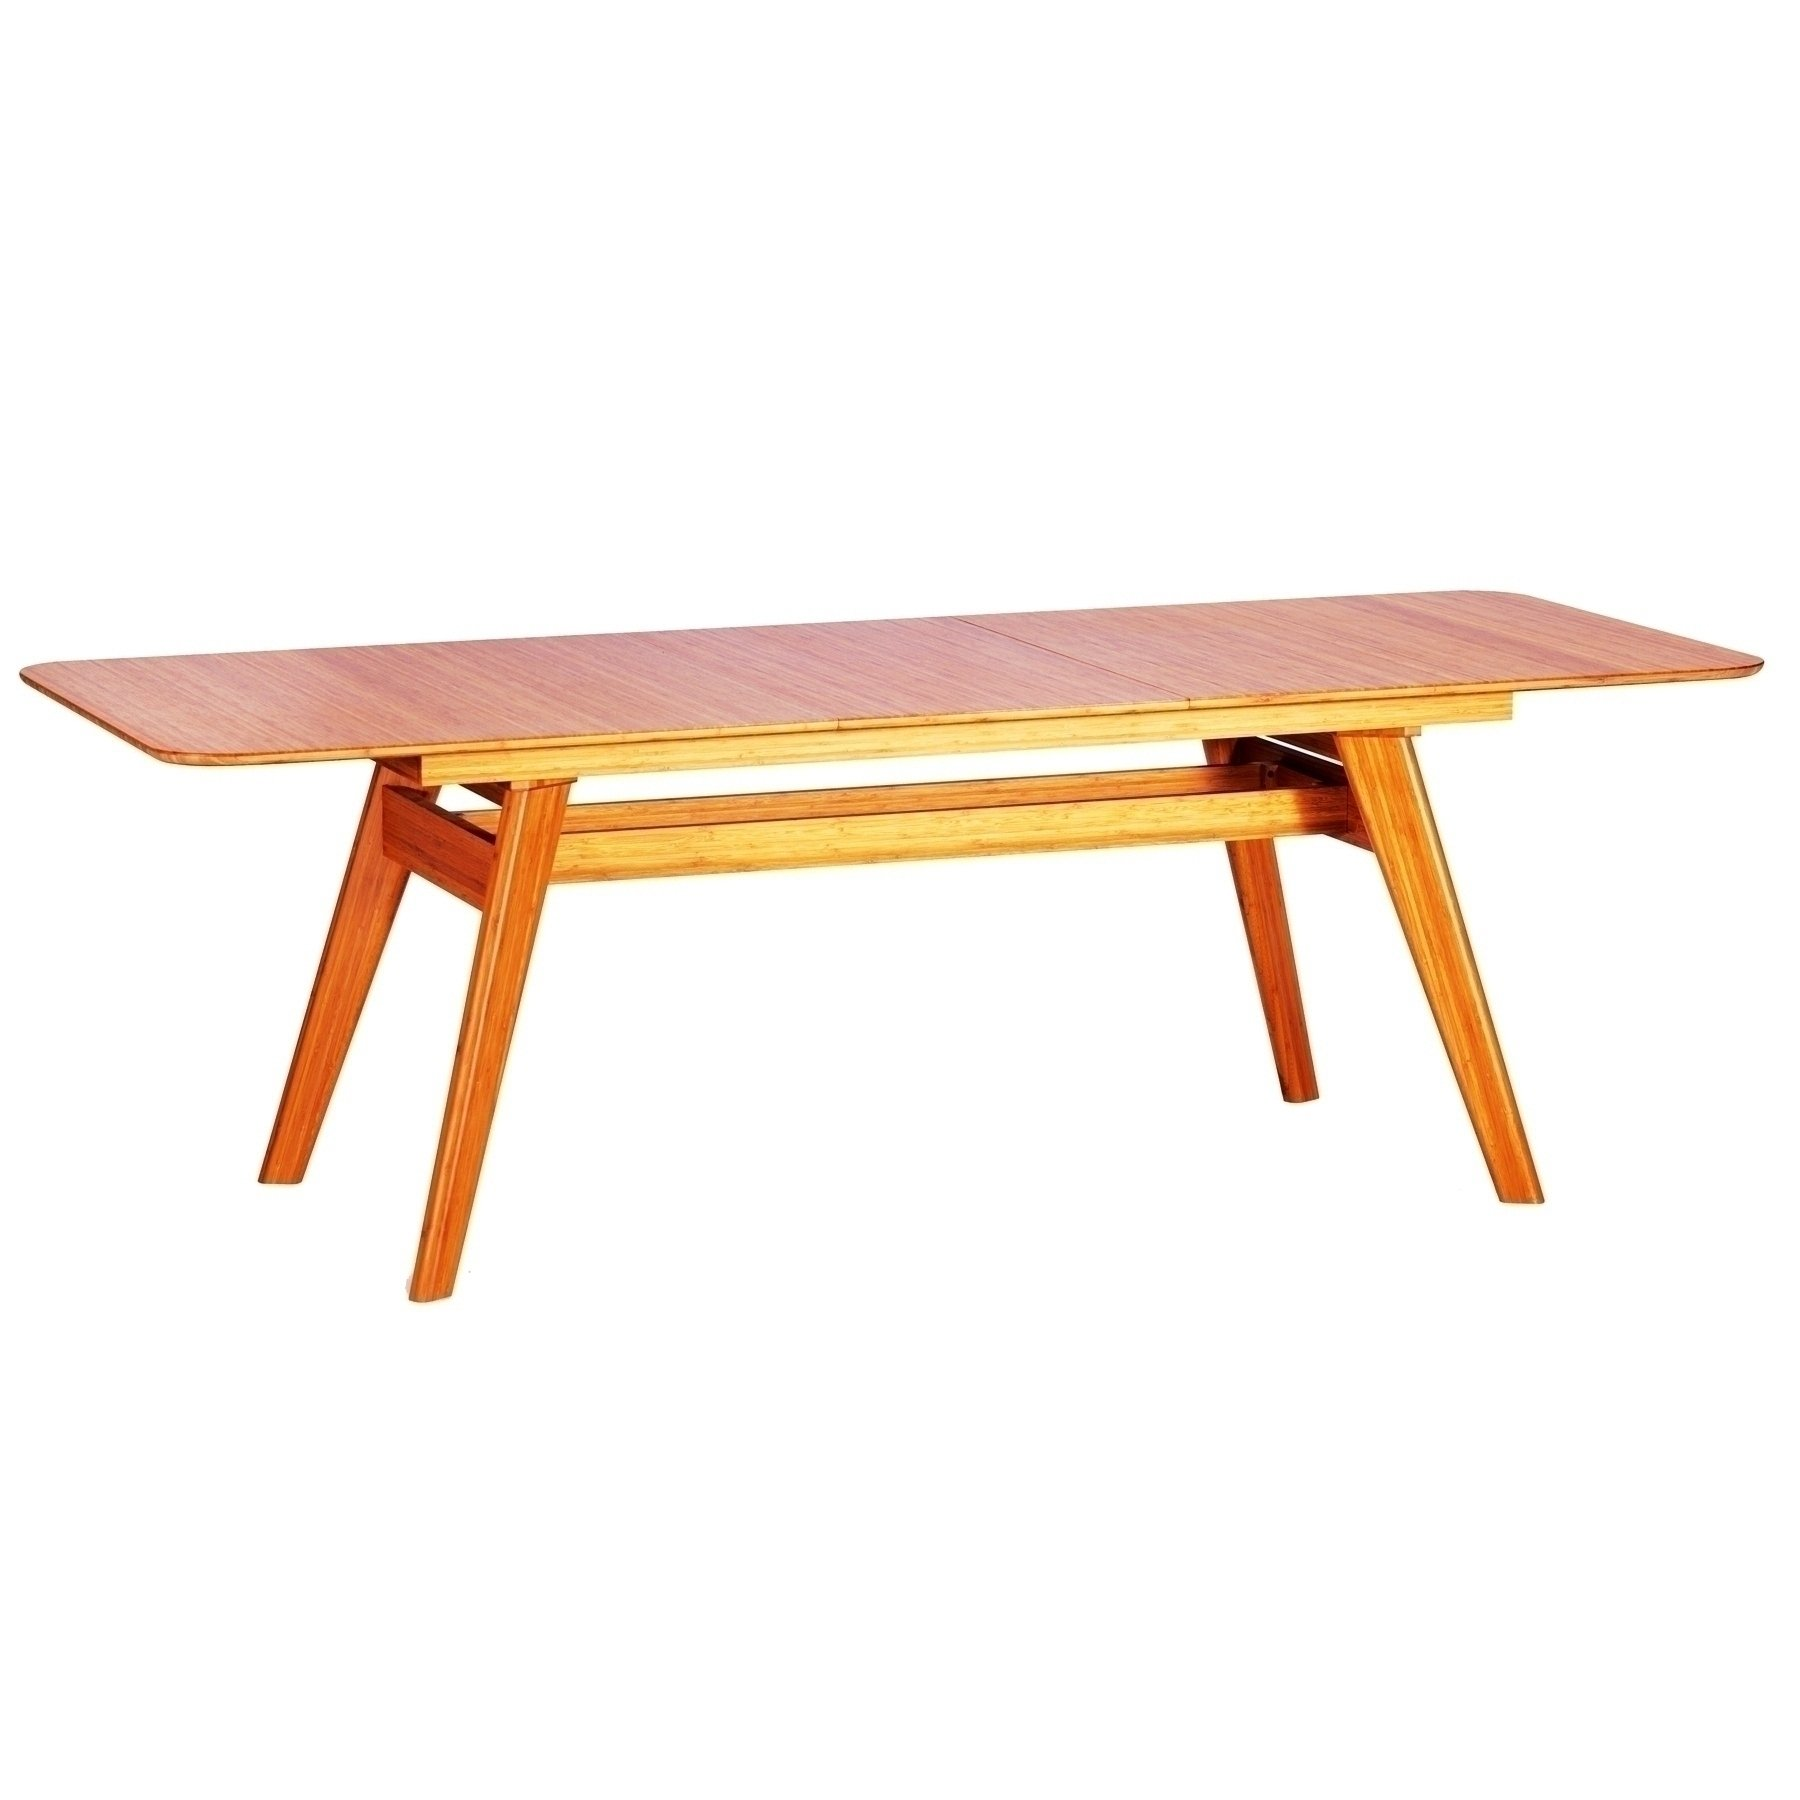 currant dining table - caramelized